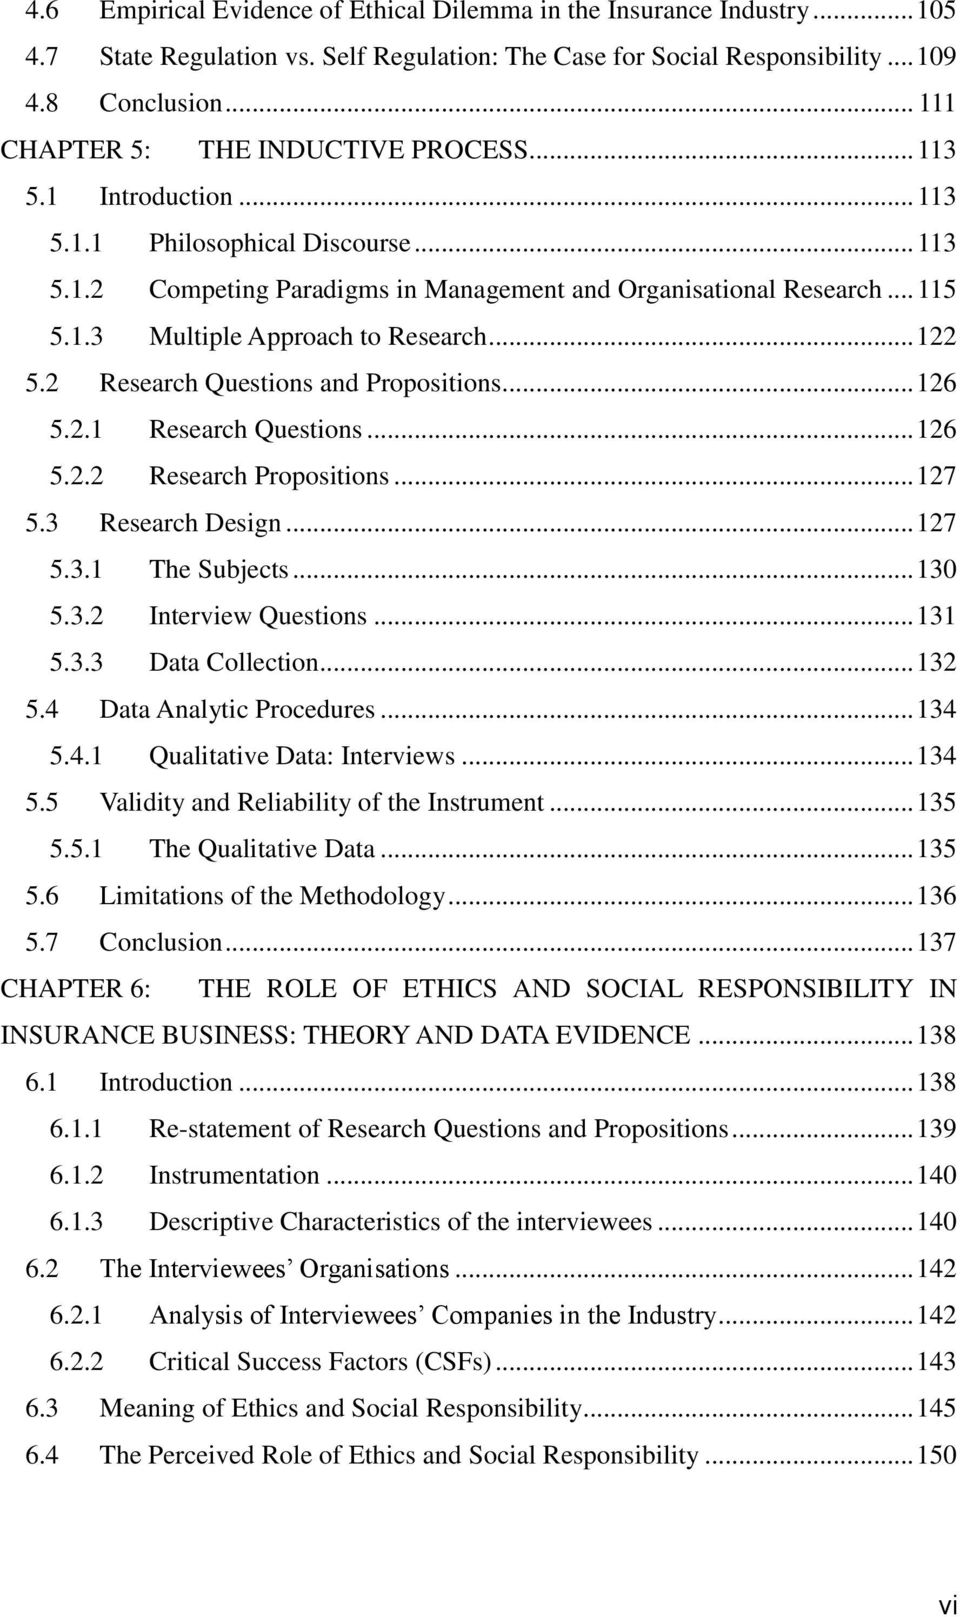 ethics and social responsibility in the ian insurance 122 5 2 research questions and propositions 126 5 2 1 research